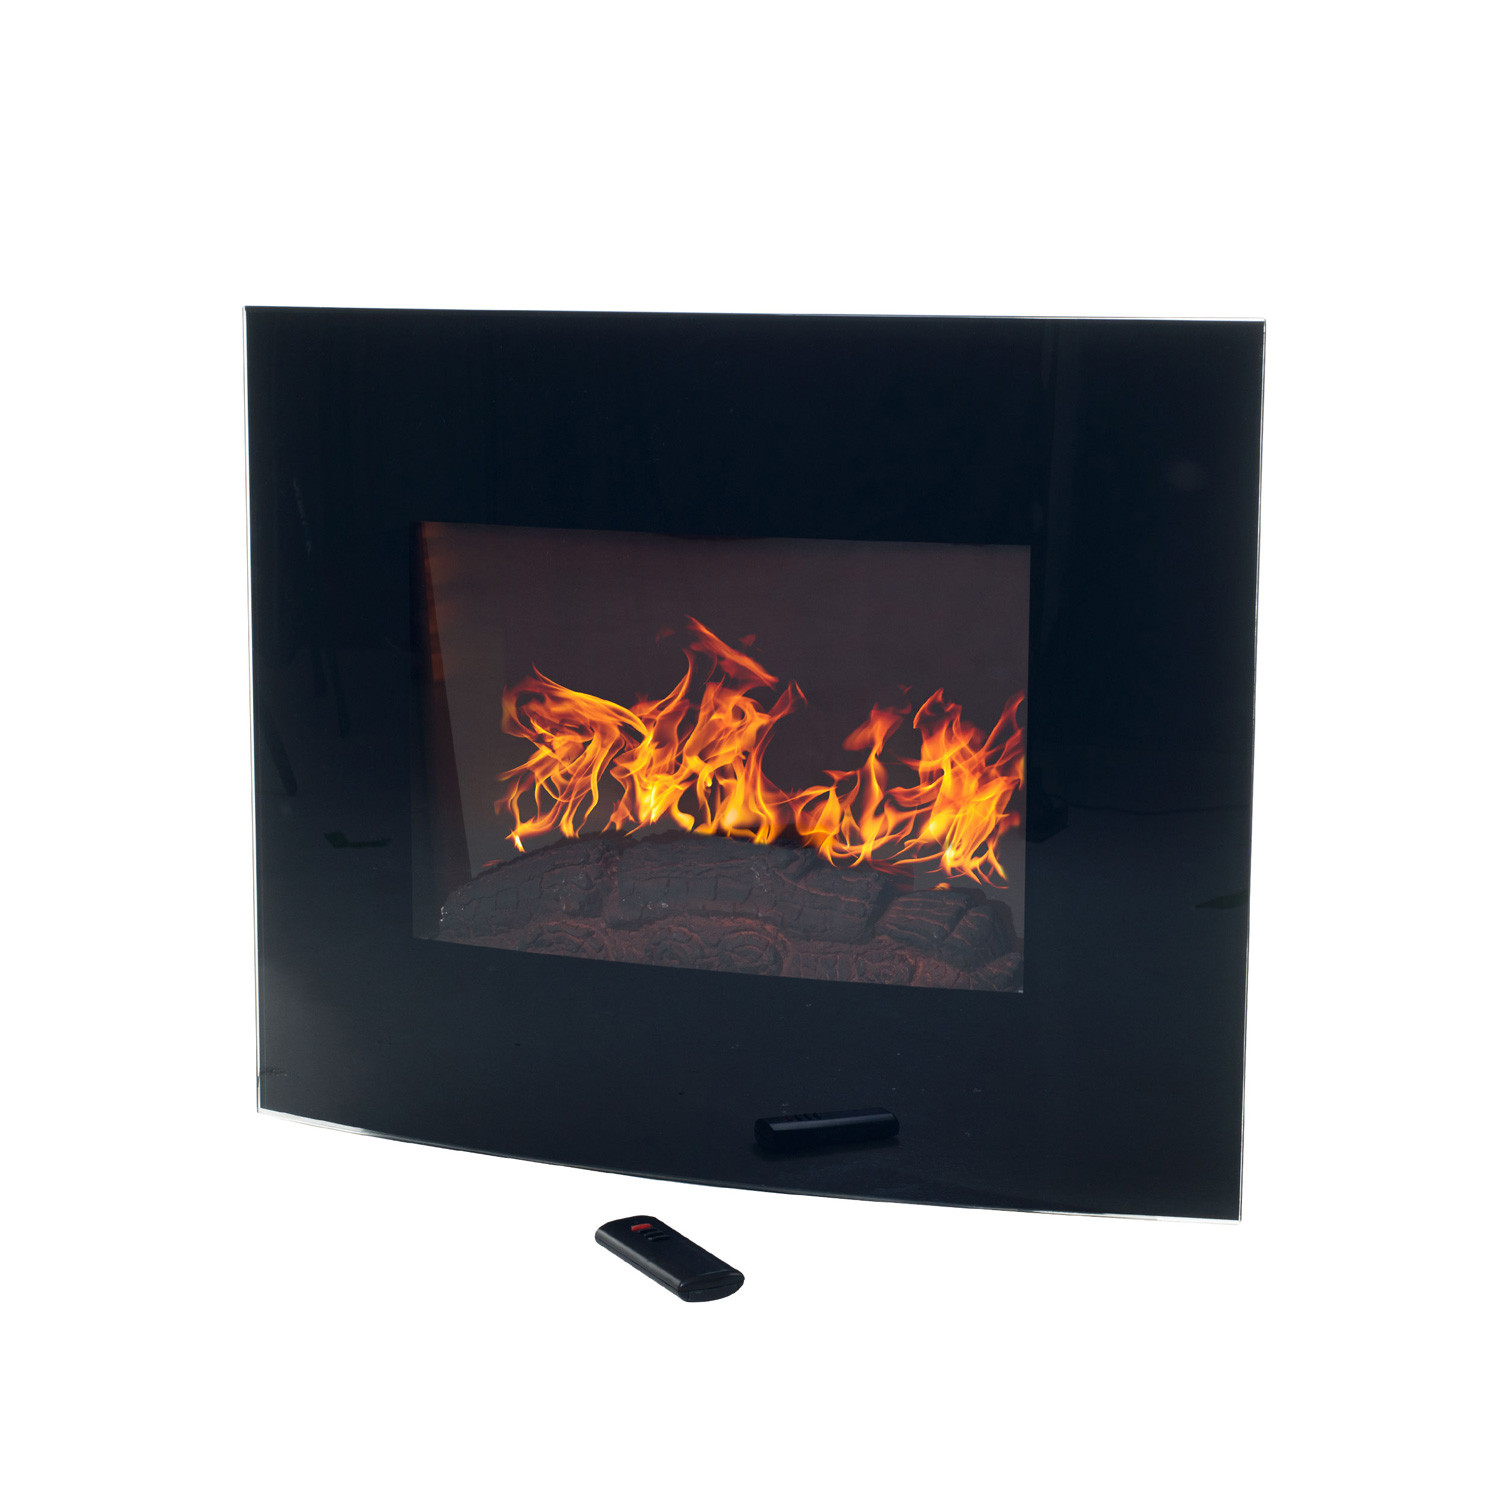 Northwest Wall Mounted Electric Fireplace + Remote // Curved Glass - Northwest Wall Mounted Electric Fireplace + Remote // Curved Glass